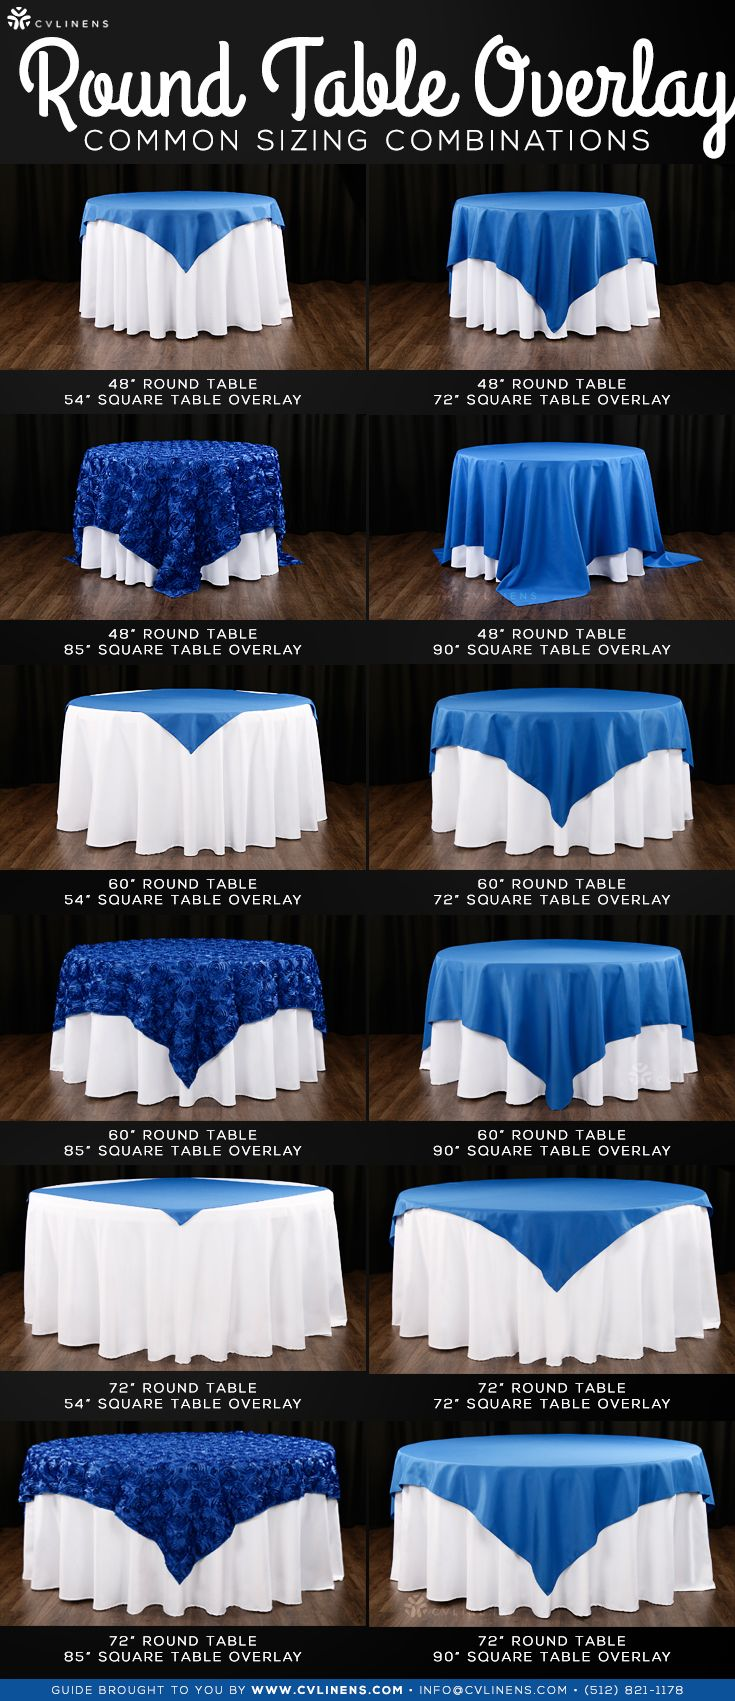 Round Table Overlays.Round Table Overlay Sizing Combinations Wedding Planning Tips